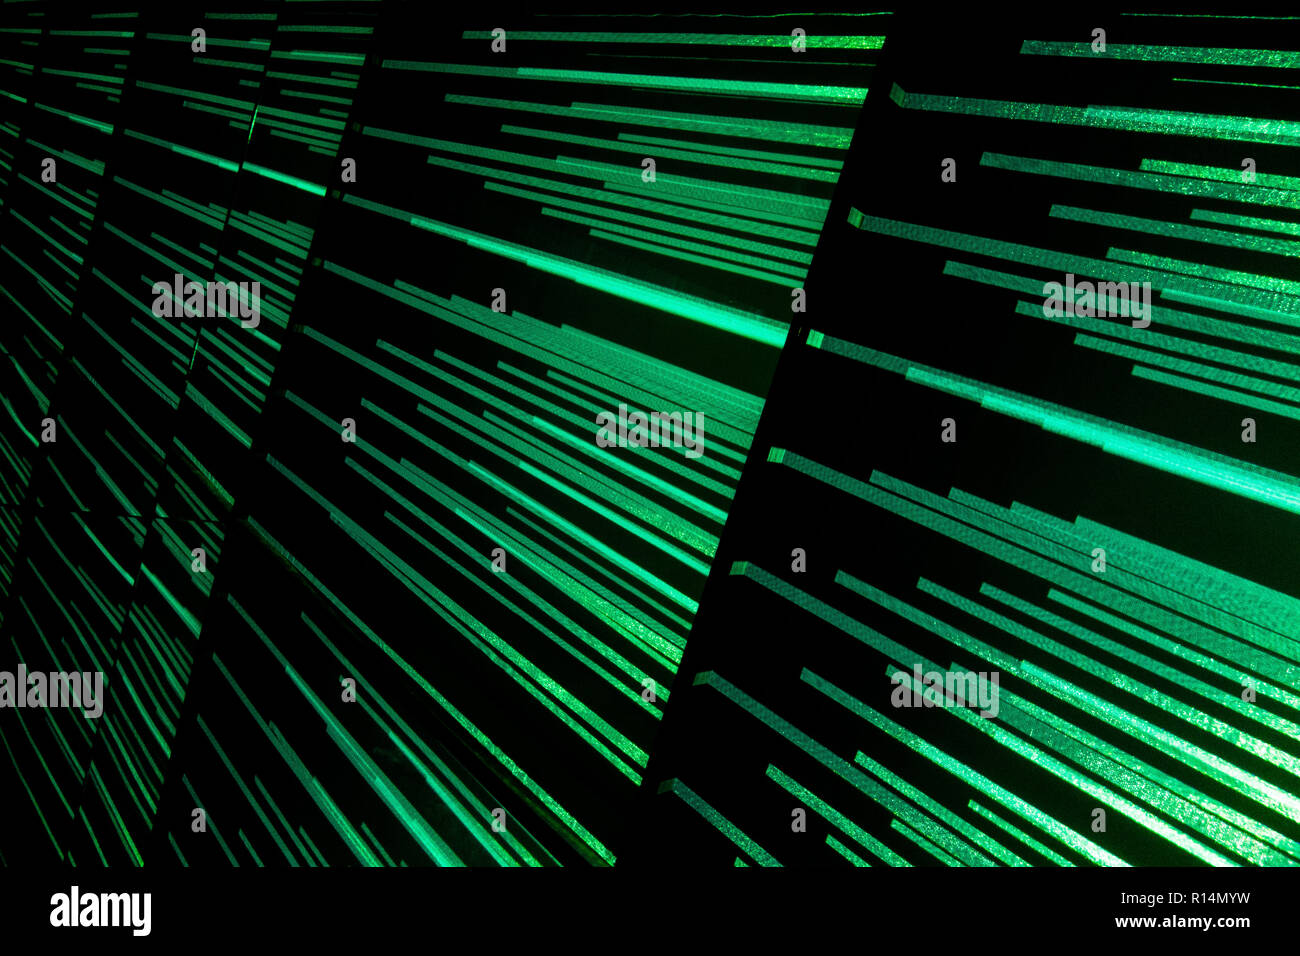 Colorful streaks of light show diminishing perspective and create a sense of motion, movement and speed - Stock Image